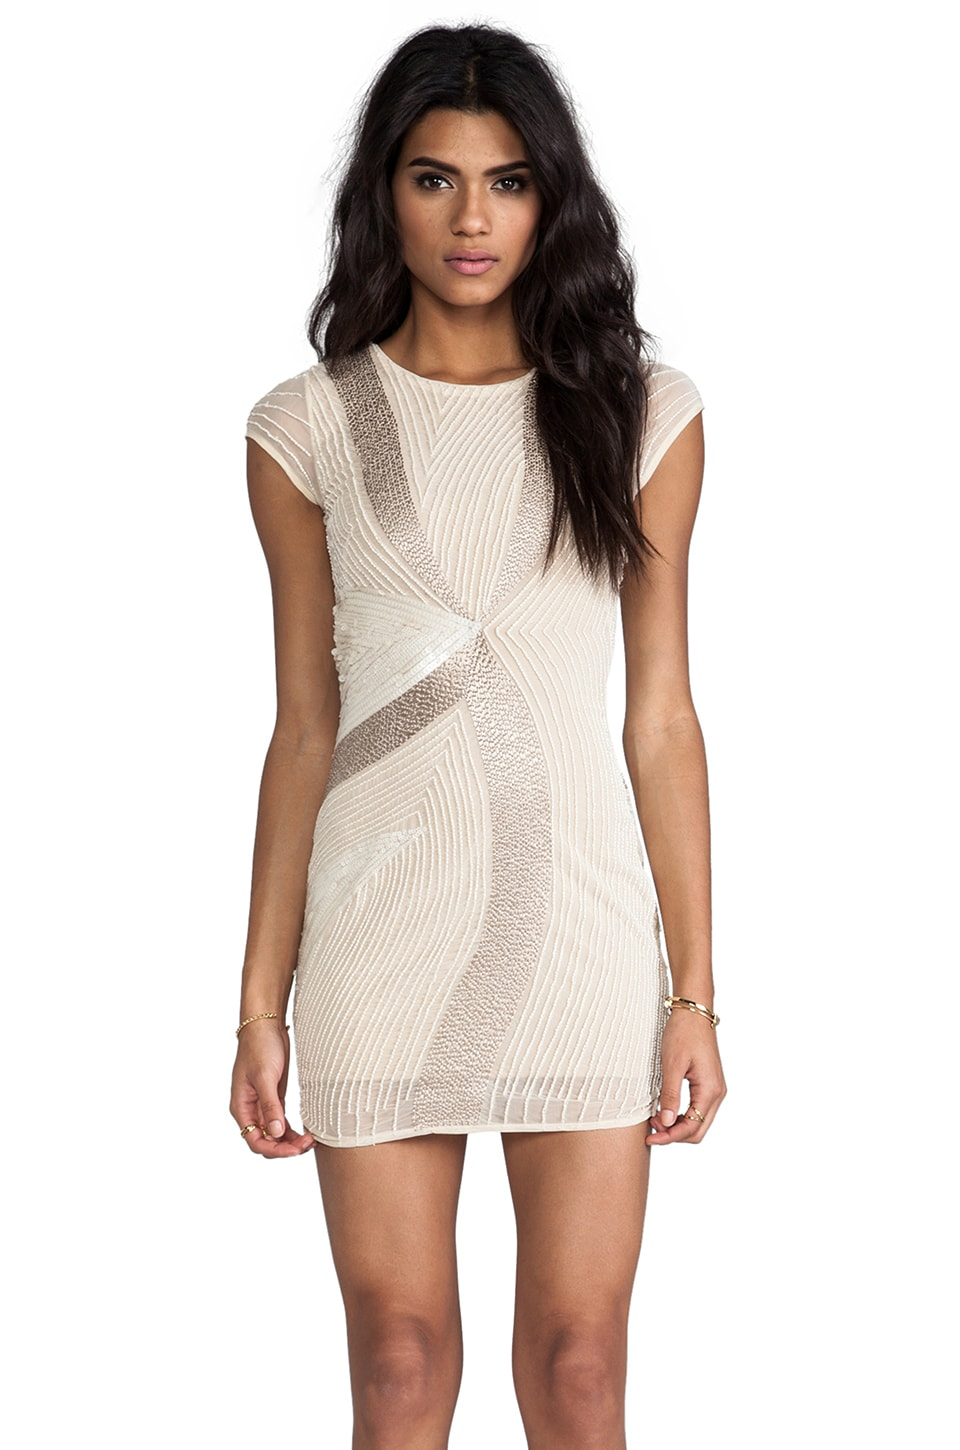 MLV Juliette Beaded Dress in Ivory